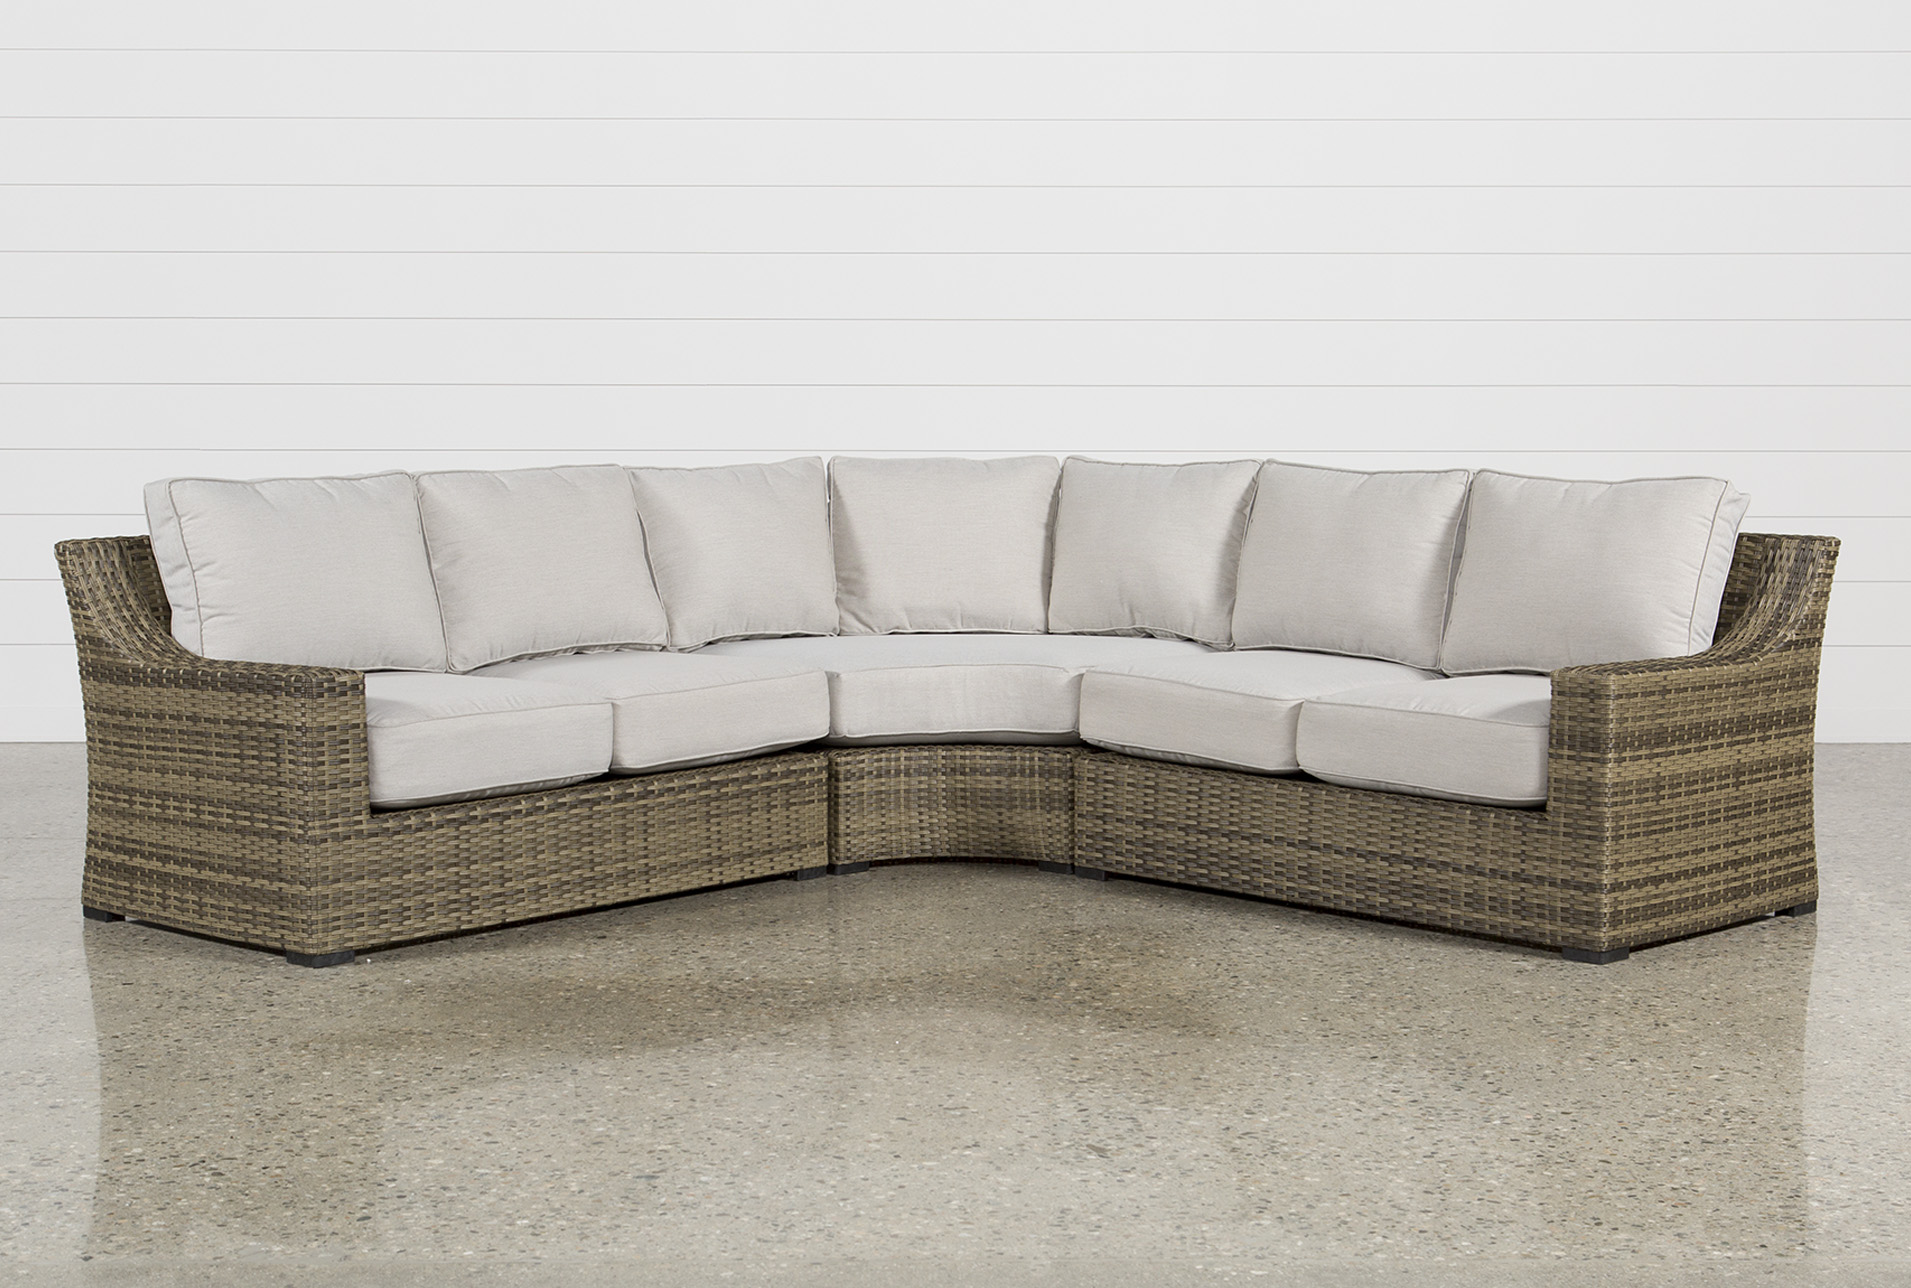 Outdoor Aventura 3 Piece Sectional